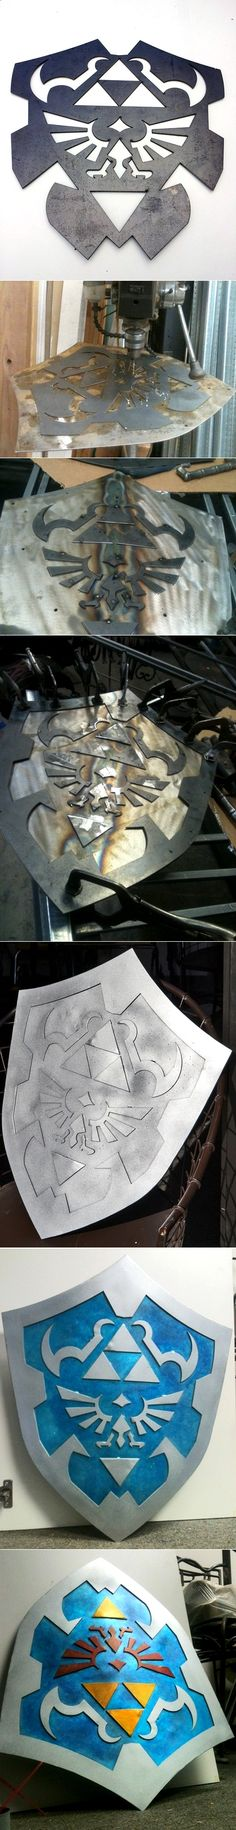 The process of making Link's hylian shield from Zelda : Ocarina of Time by manhattanphd